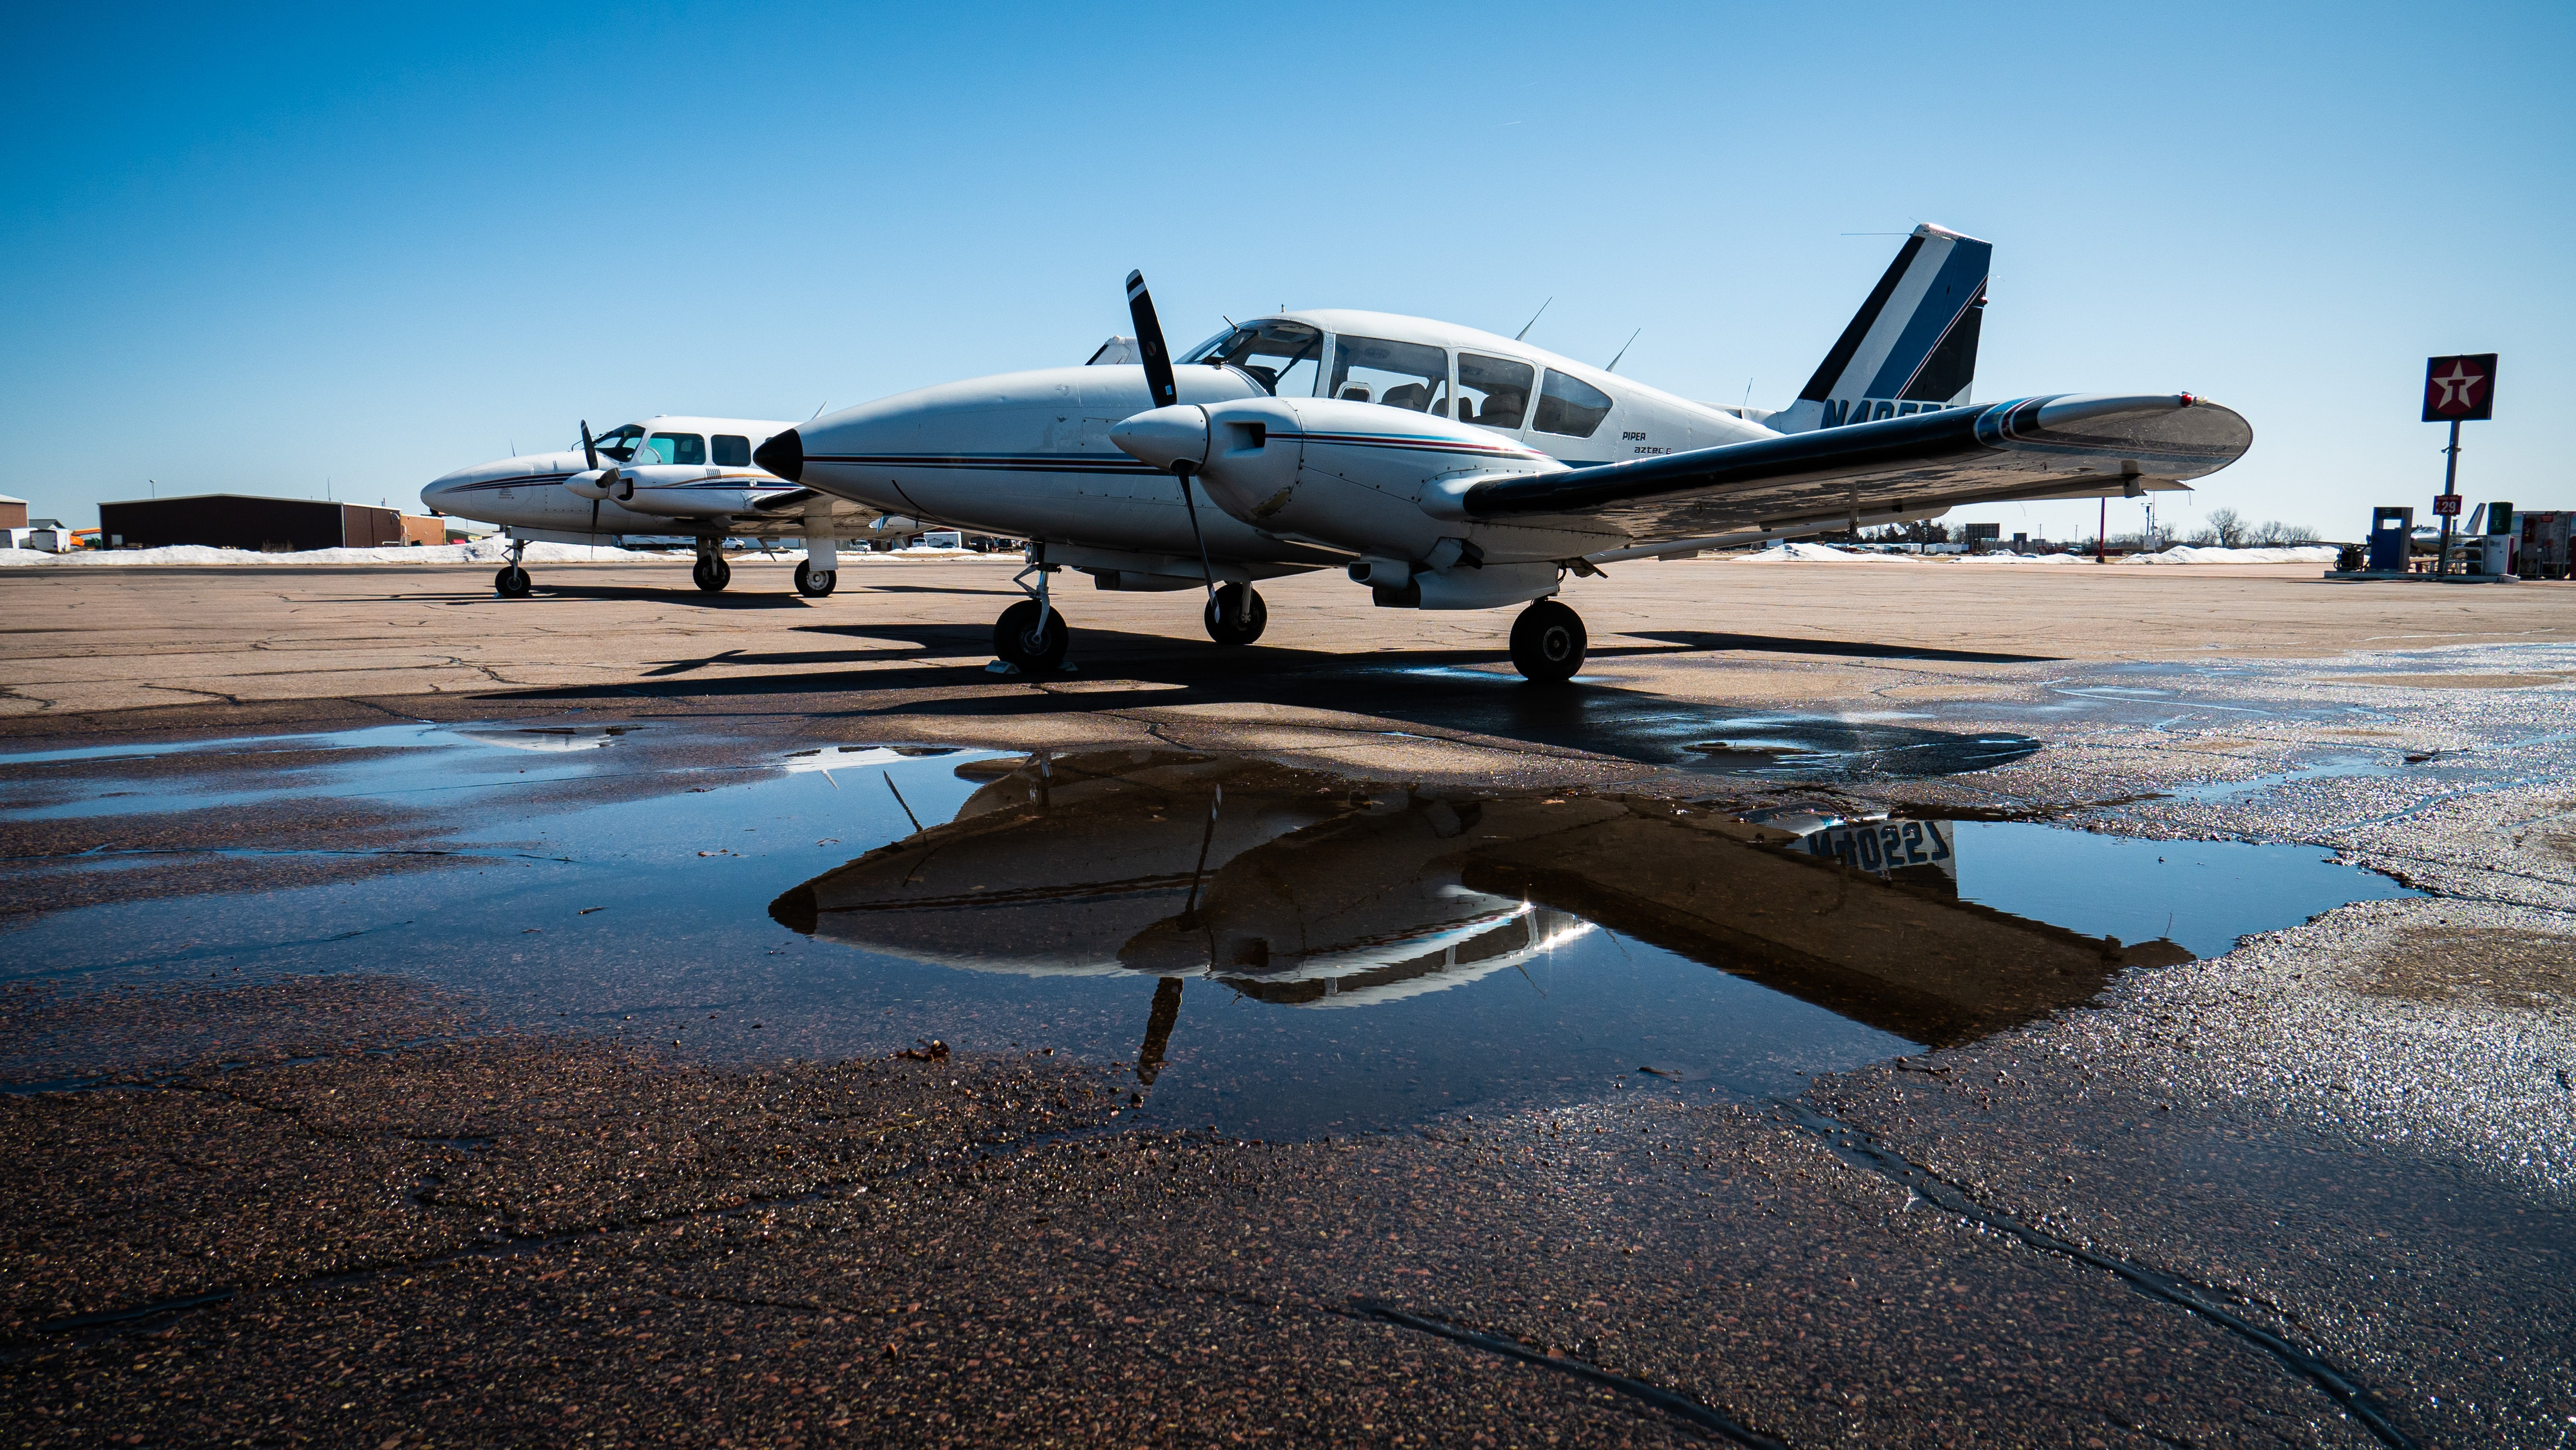 General Aviation Responds to the Coronavirus Outbreak